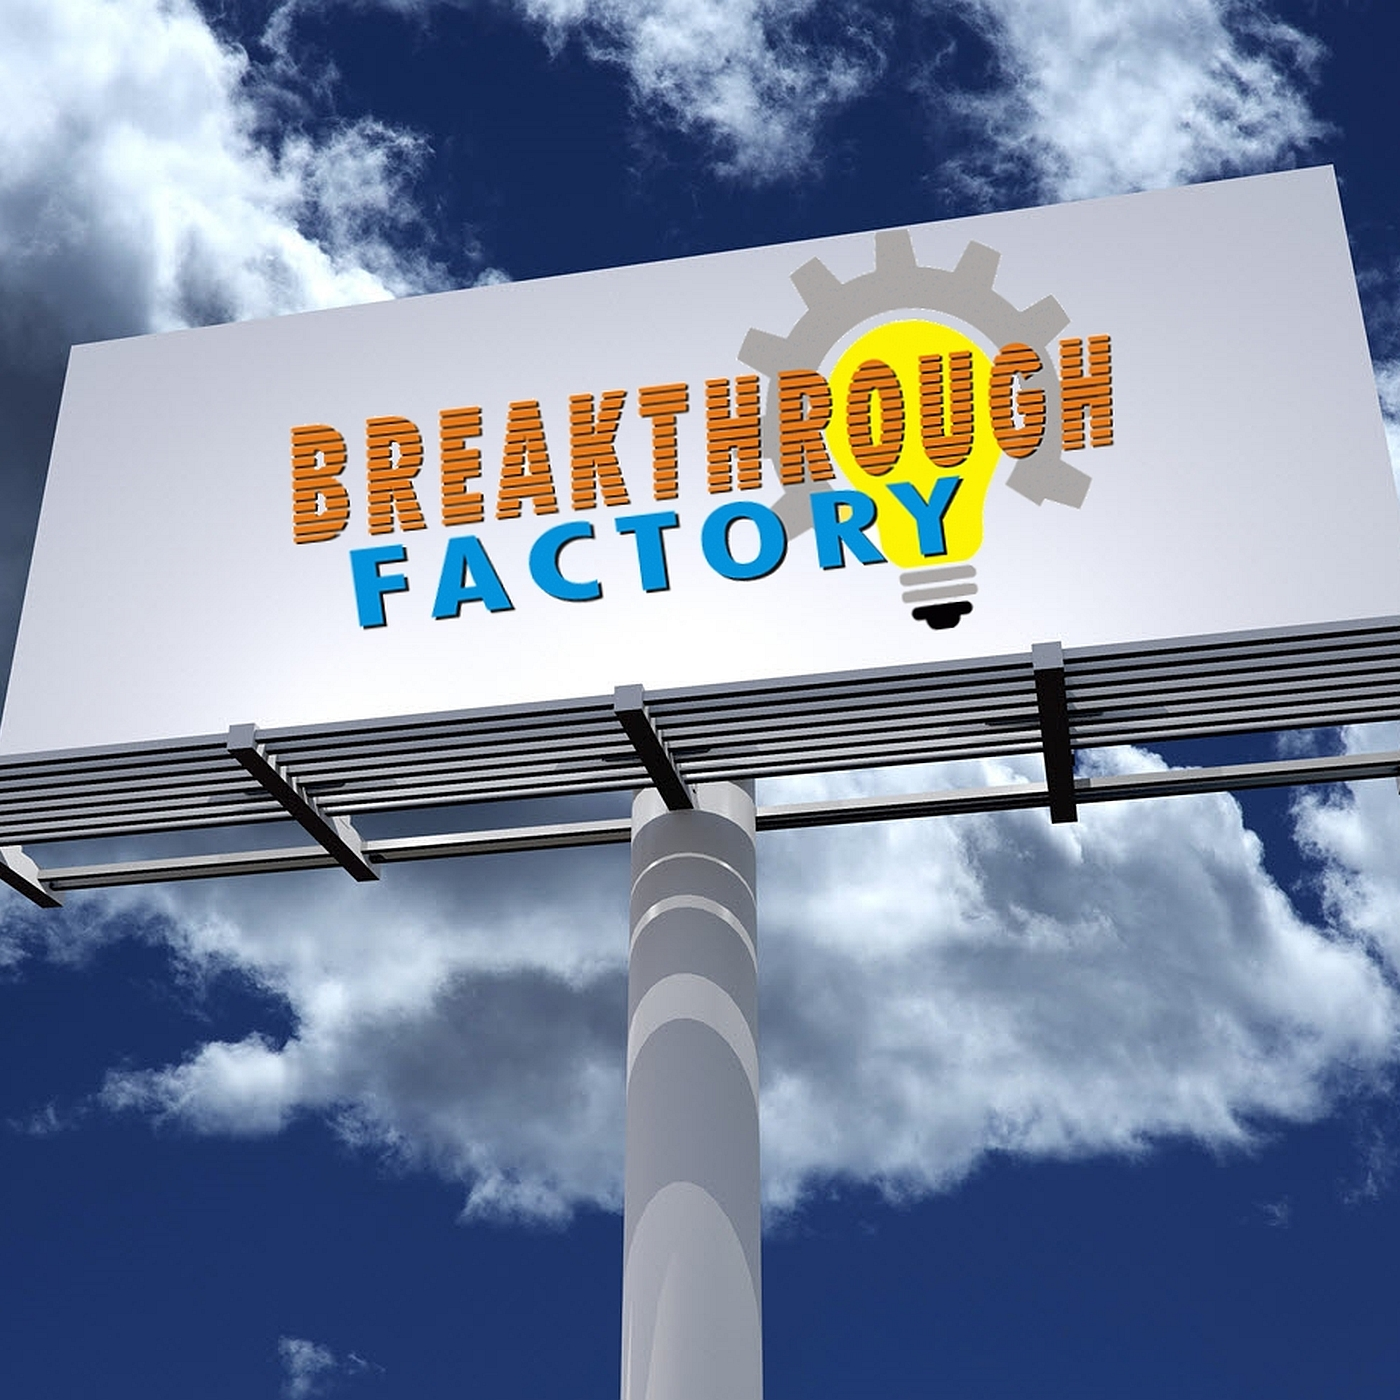 Breakthrough Factory